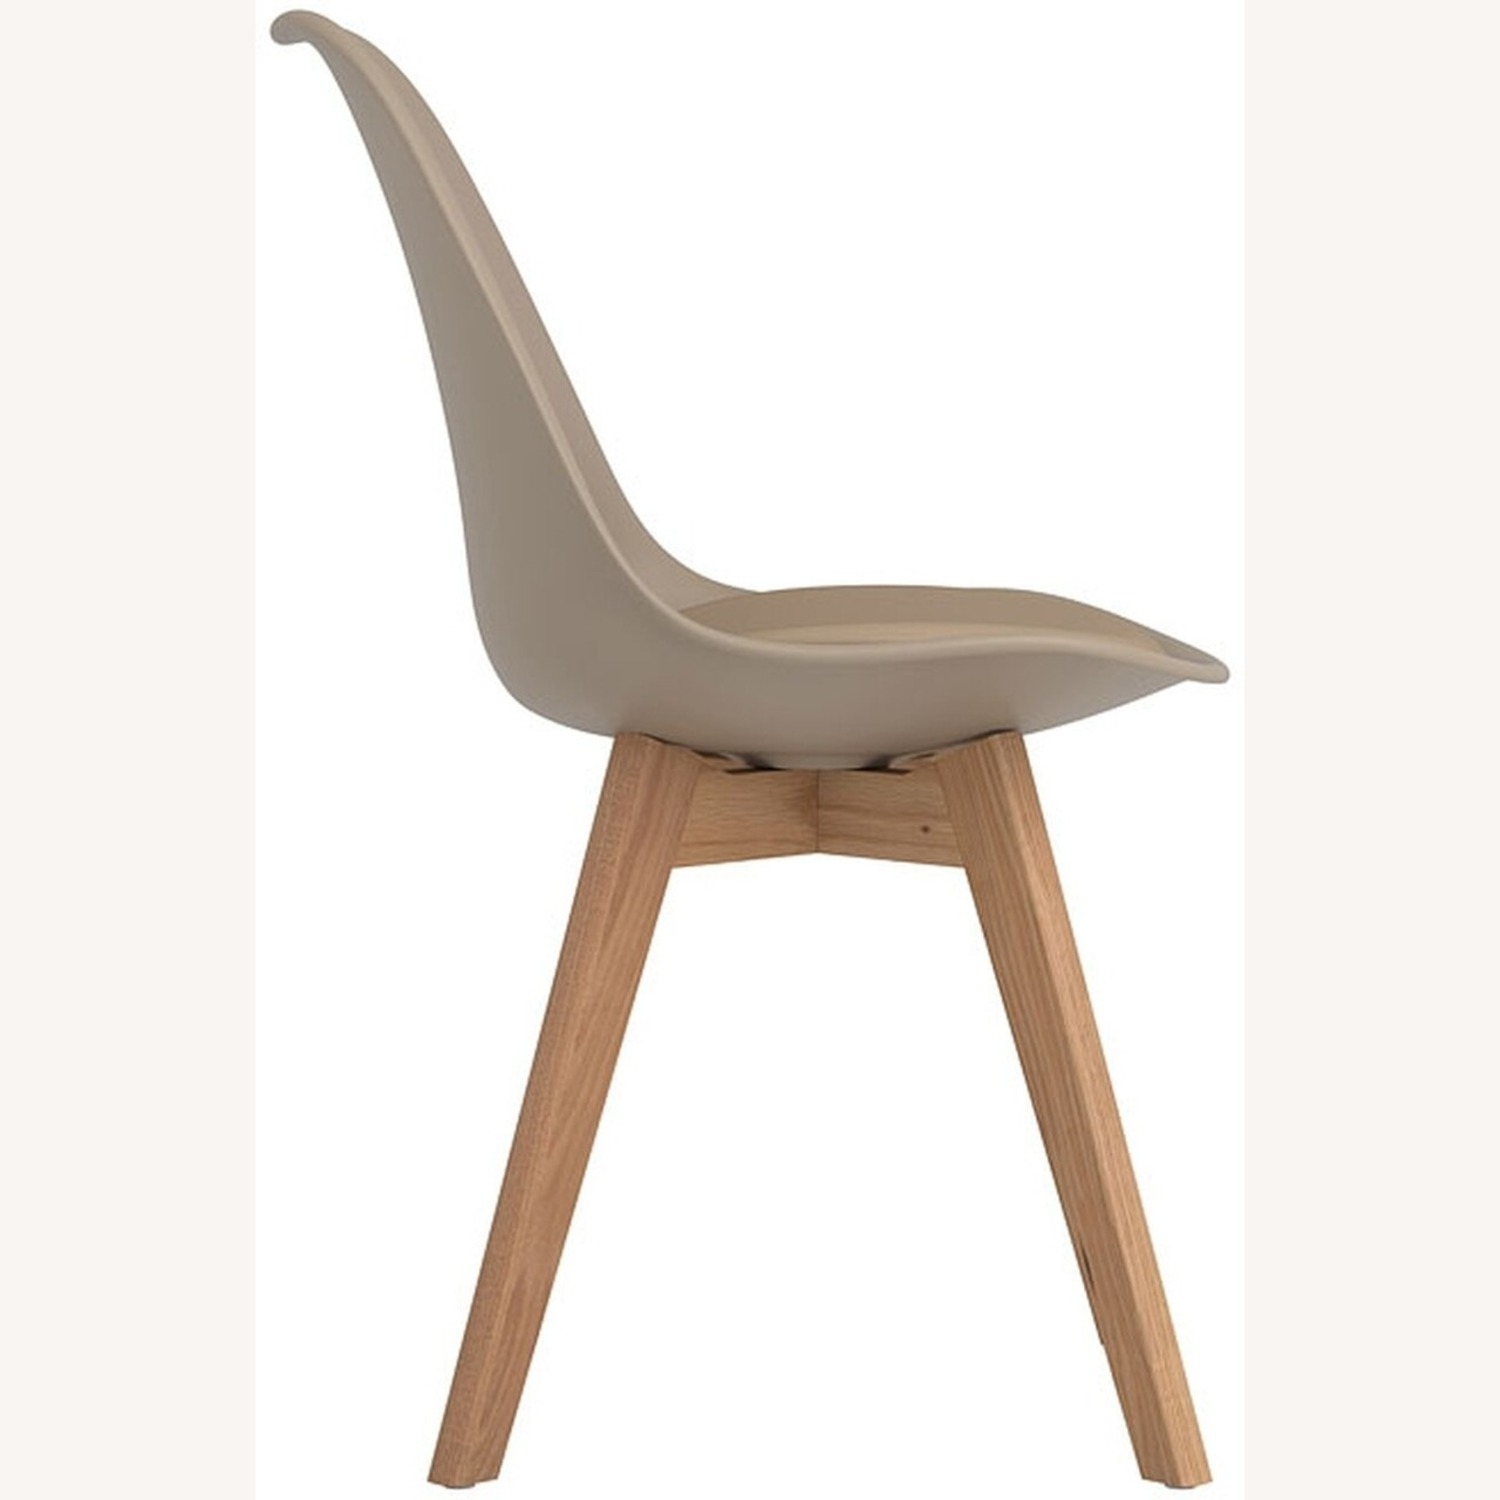 Modern Side Chair In Tan Leatherette - image-2